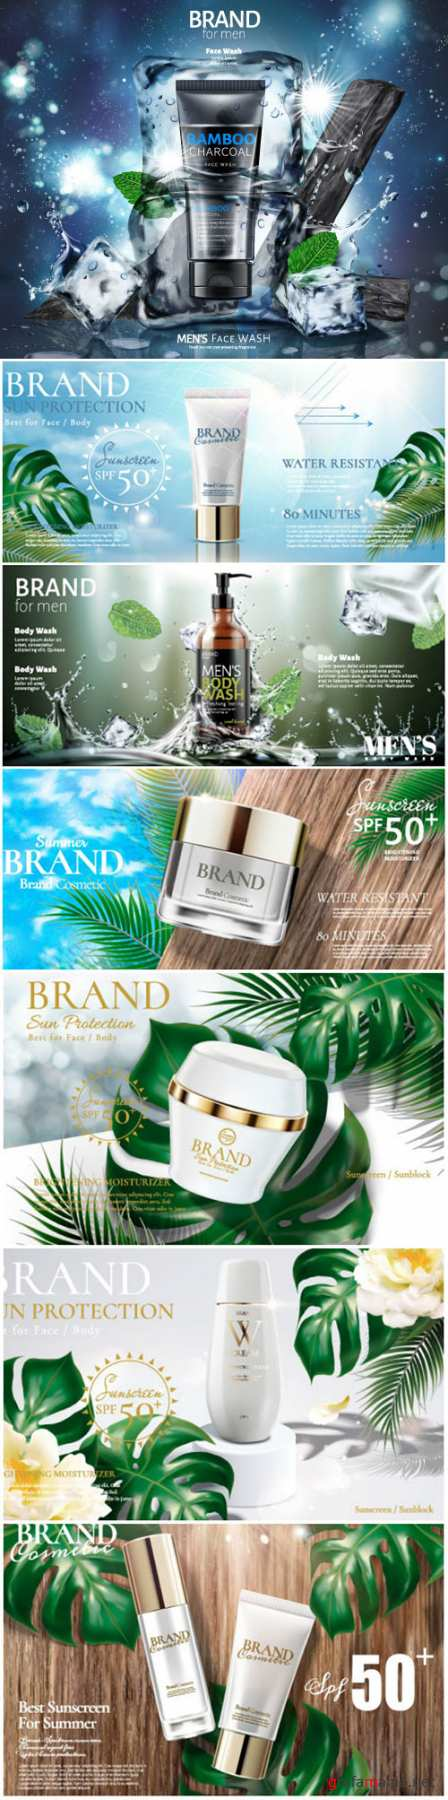 Brand cosmetic design, foundation banner ads